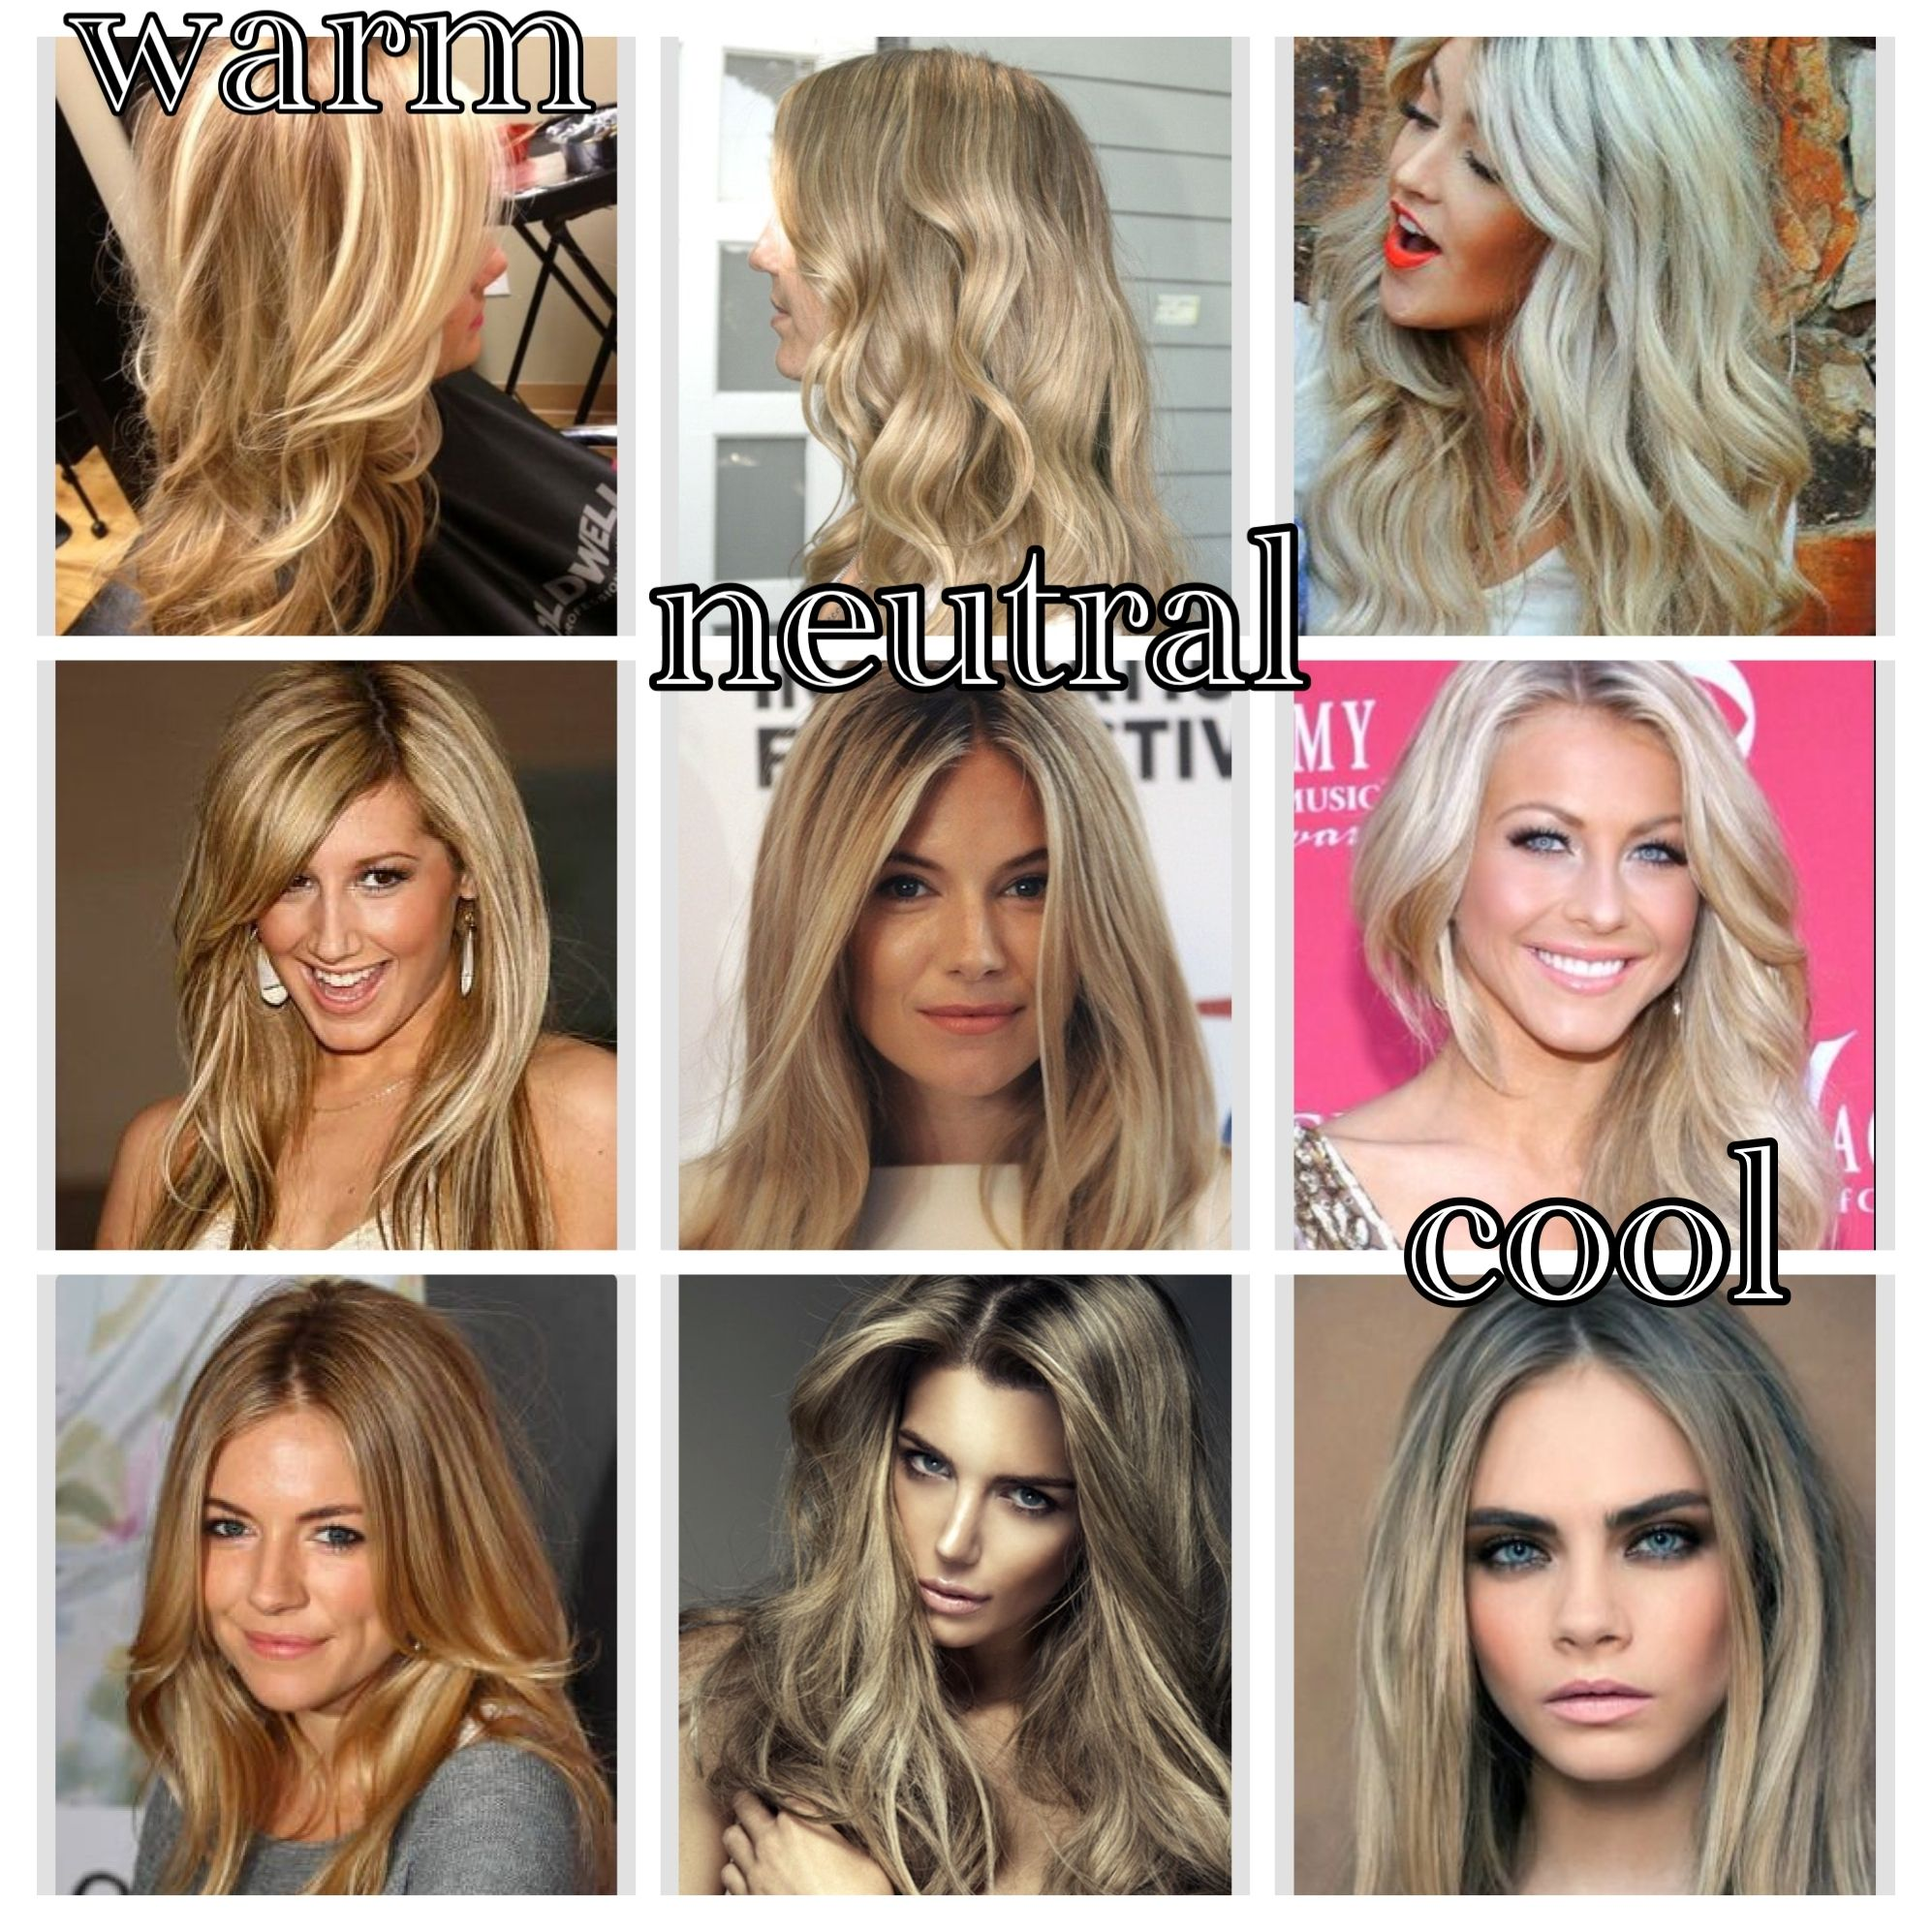 Blonde Hair Colors For Warm Skin Tones Hair Pinterest Hair